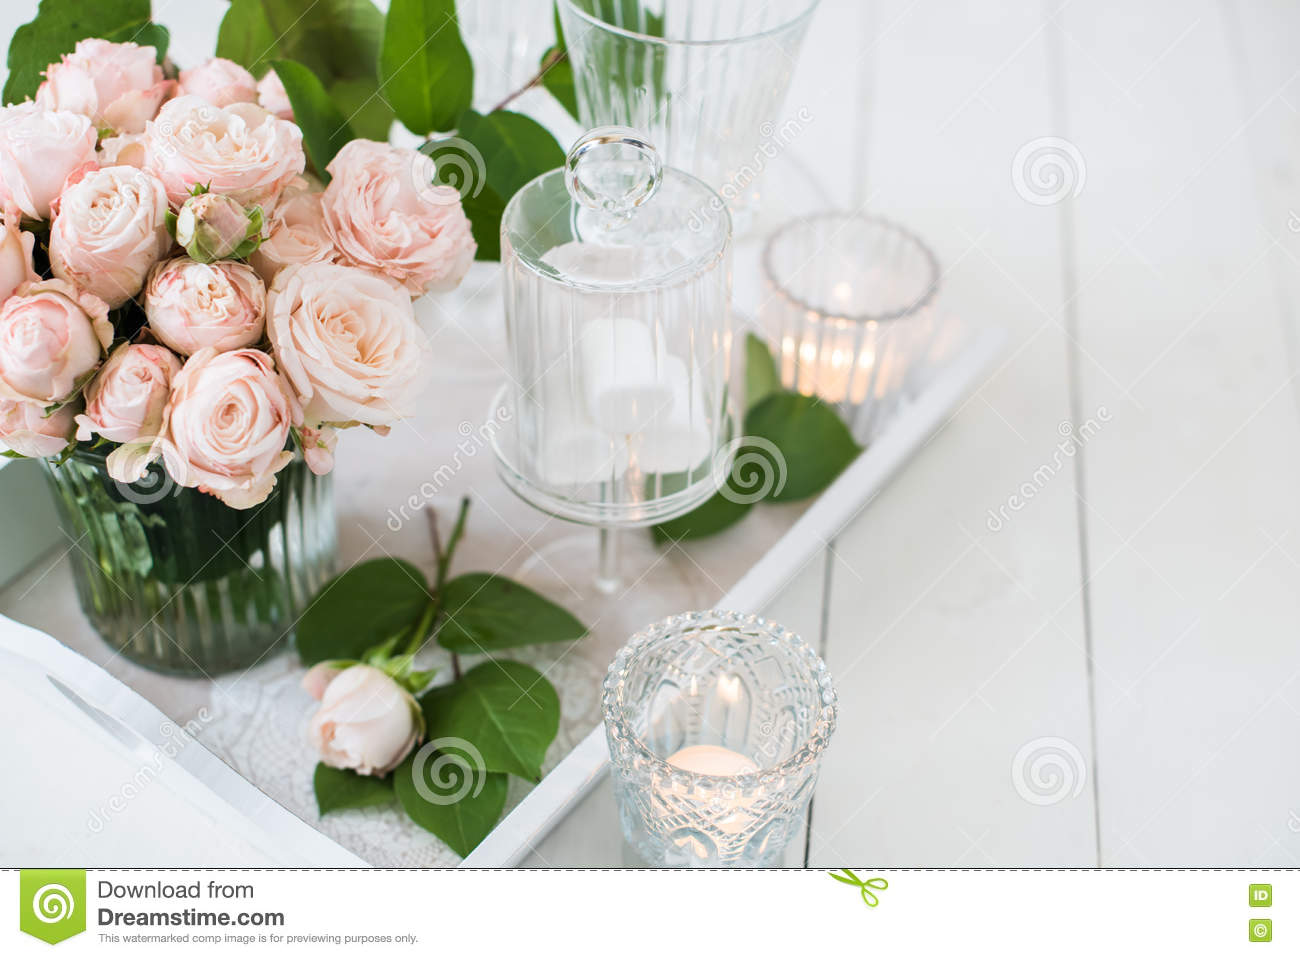 Vintage Wedding Table Decorations With Roses, Candles Cutlery Stock ...